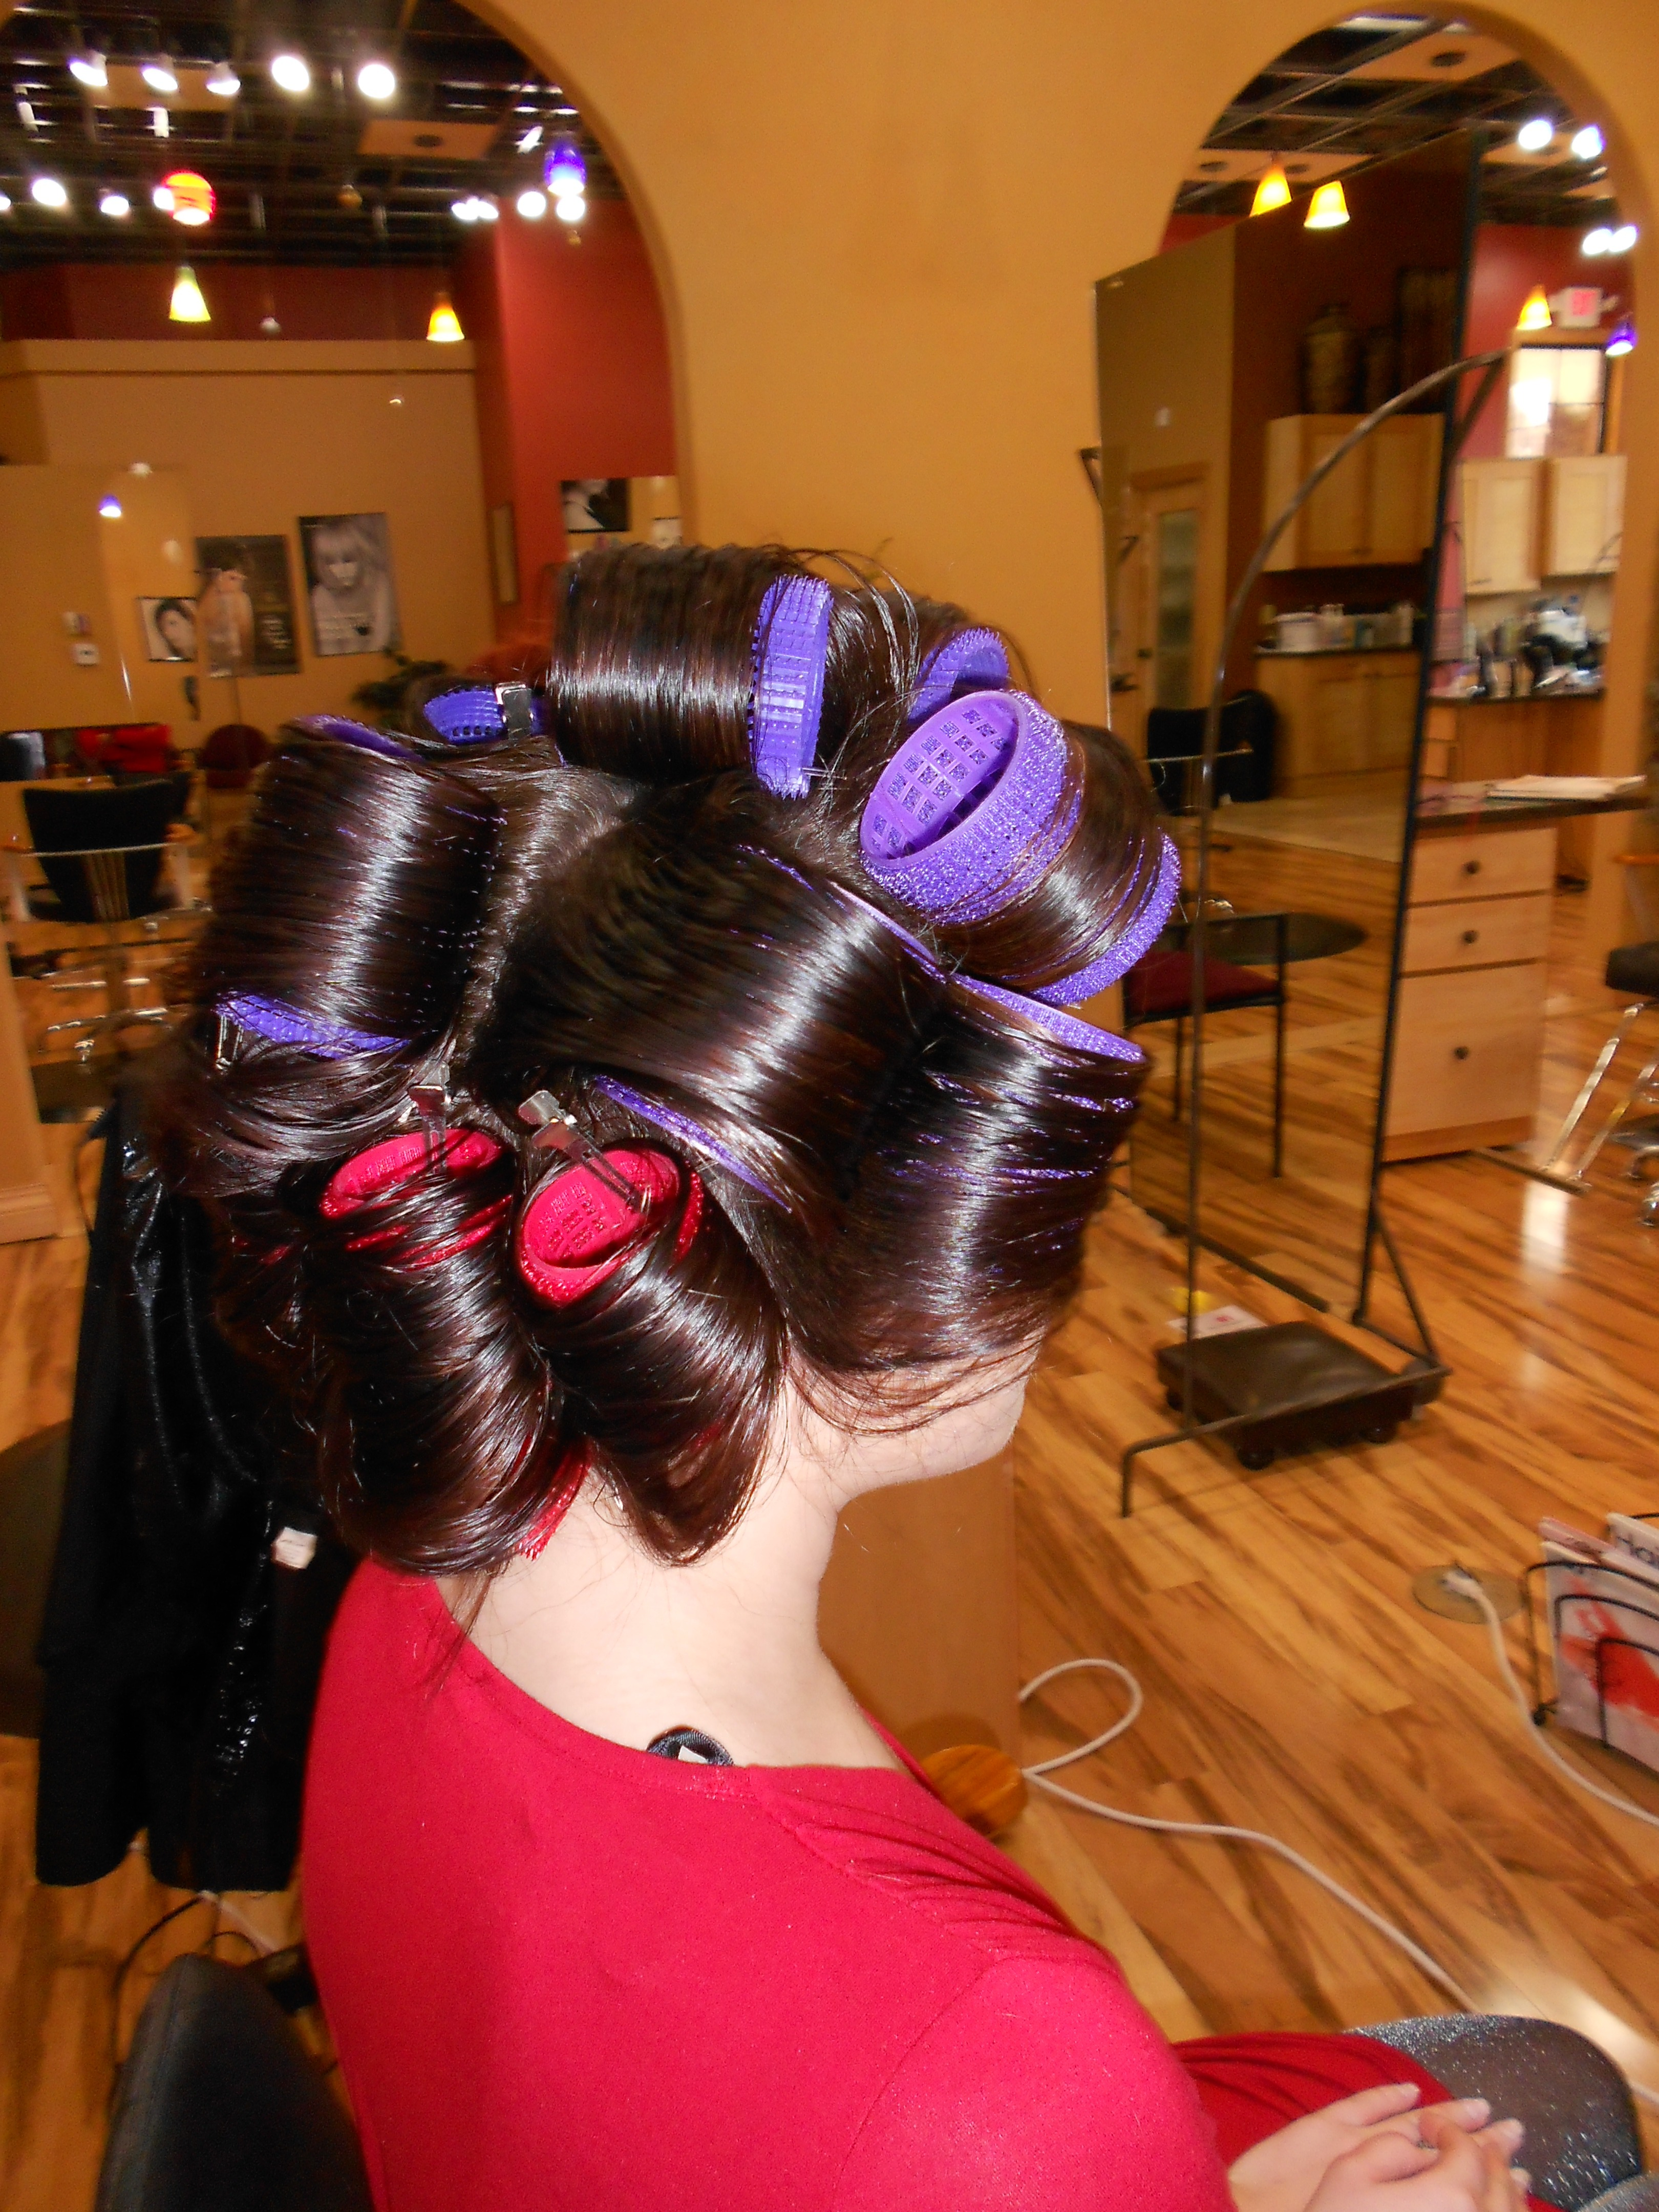 Roller Set in Hair Salon http://blog.havensalonspa.com/tag/hollywood/